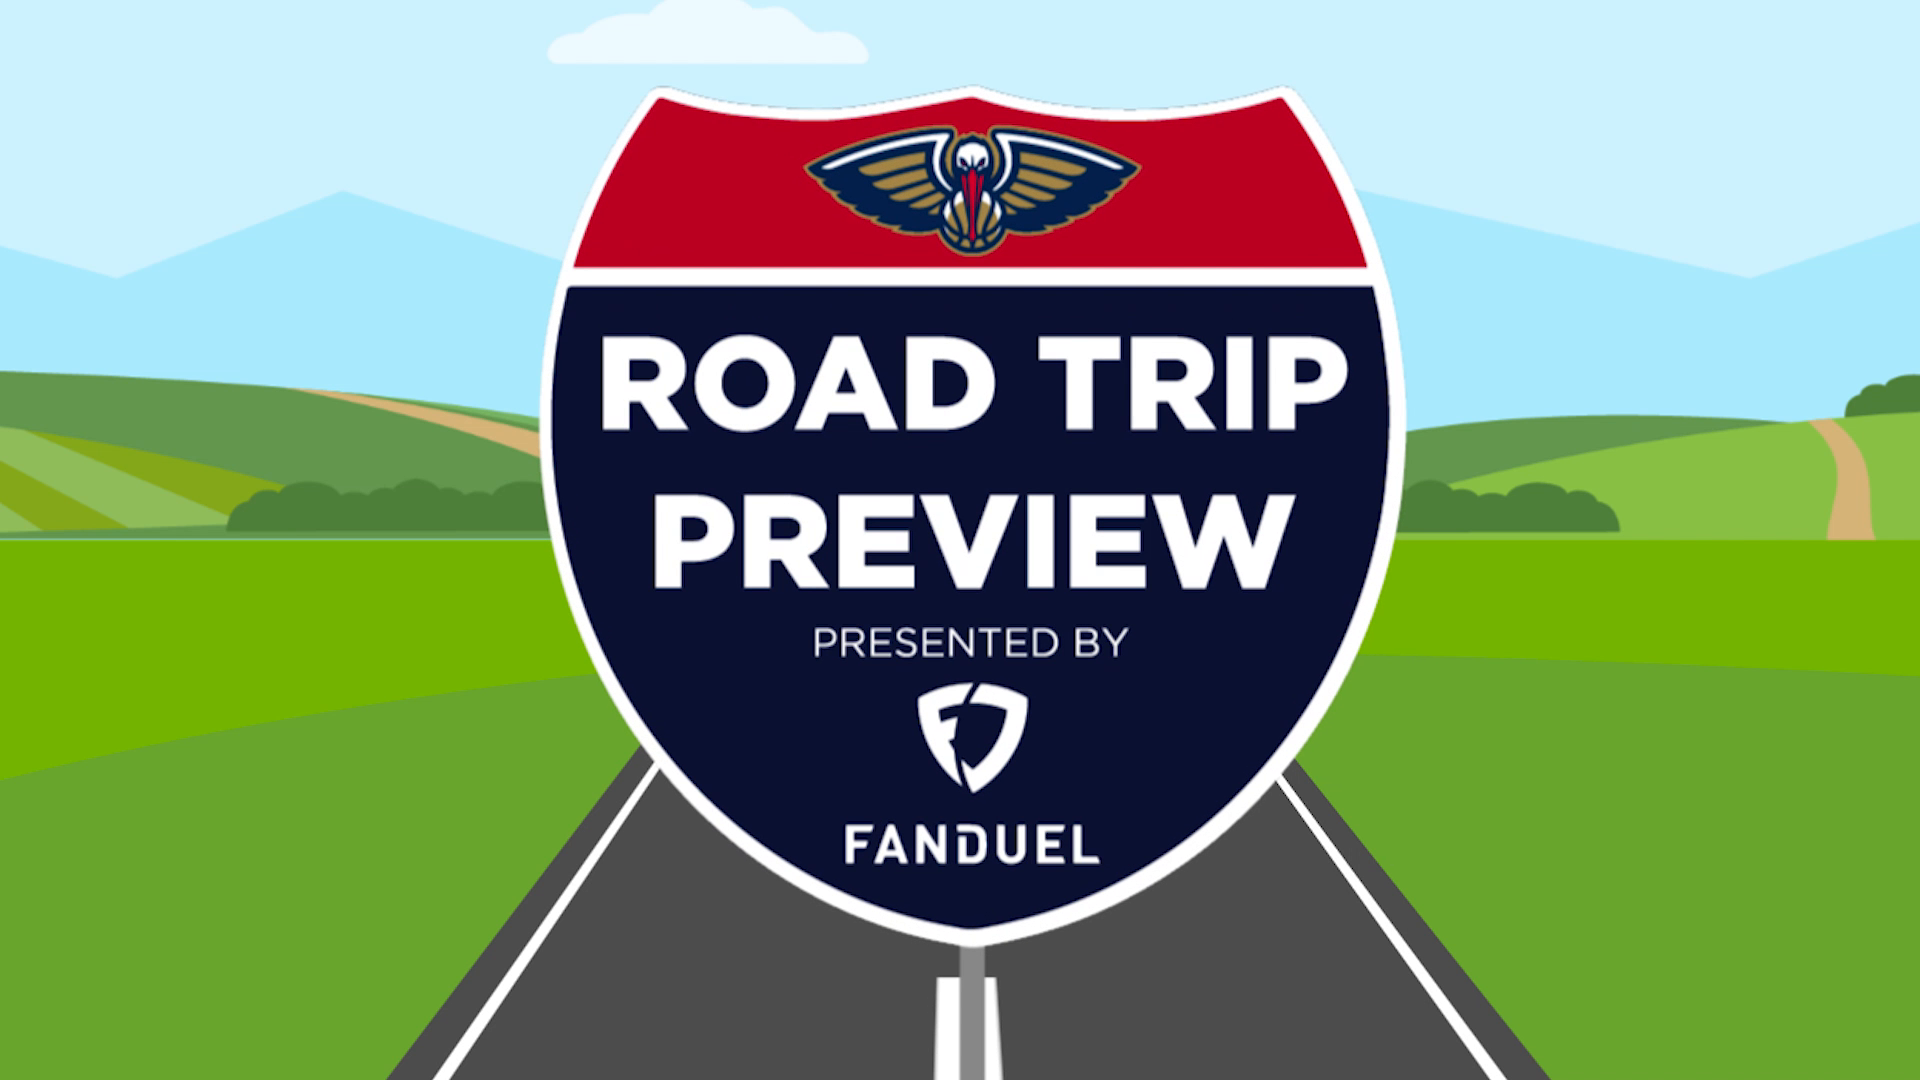 Pelicans Road Trip Preview presented by Fan Duel | Washington